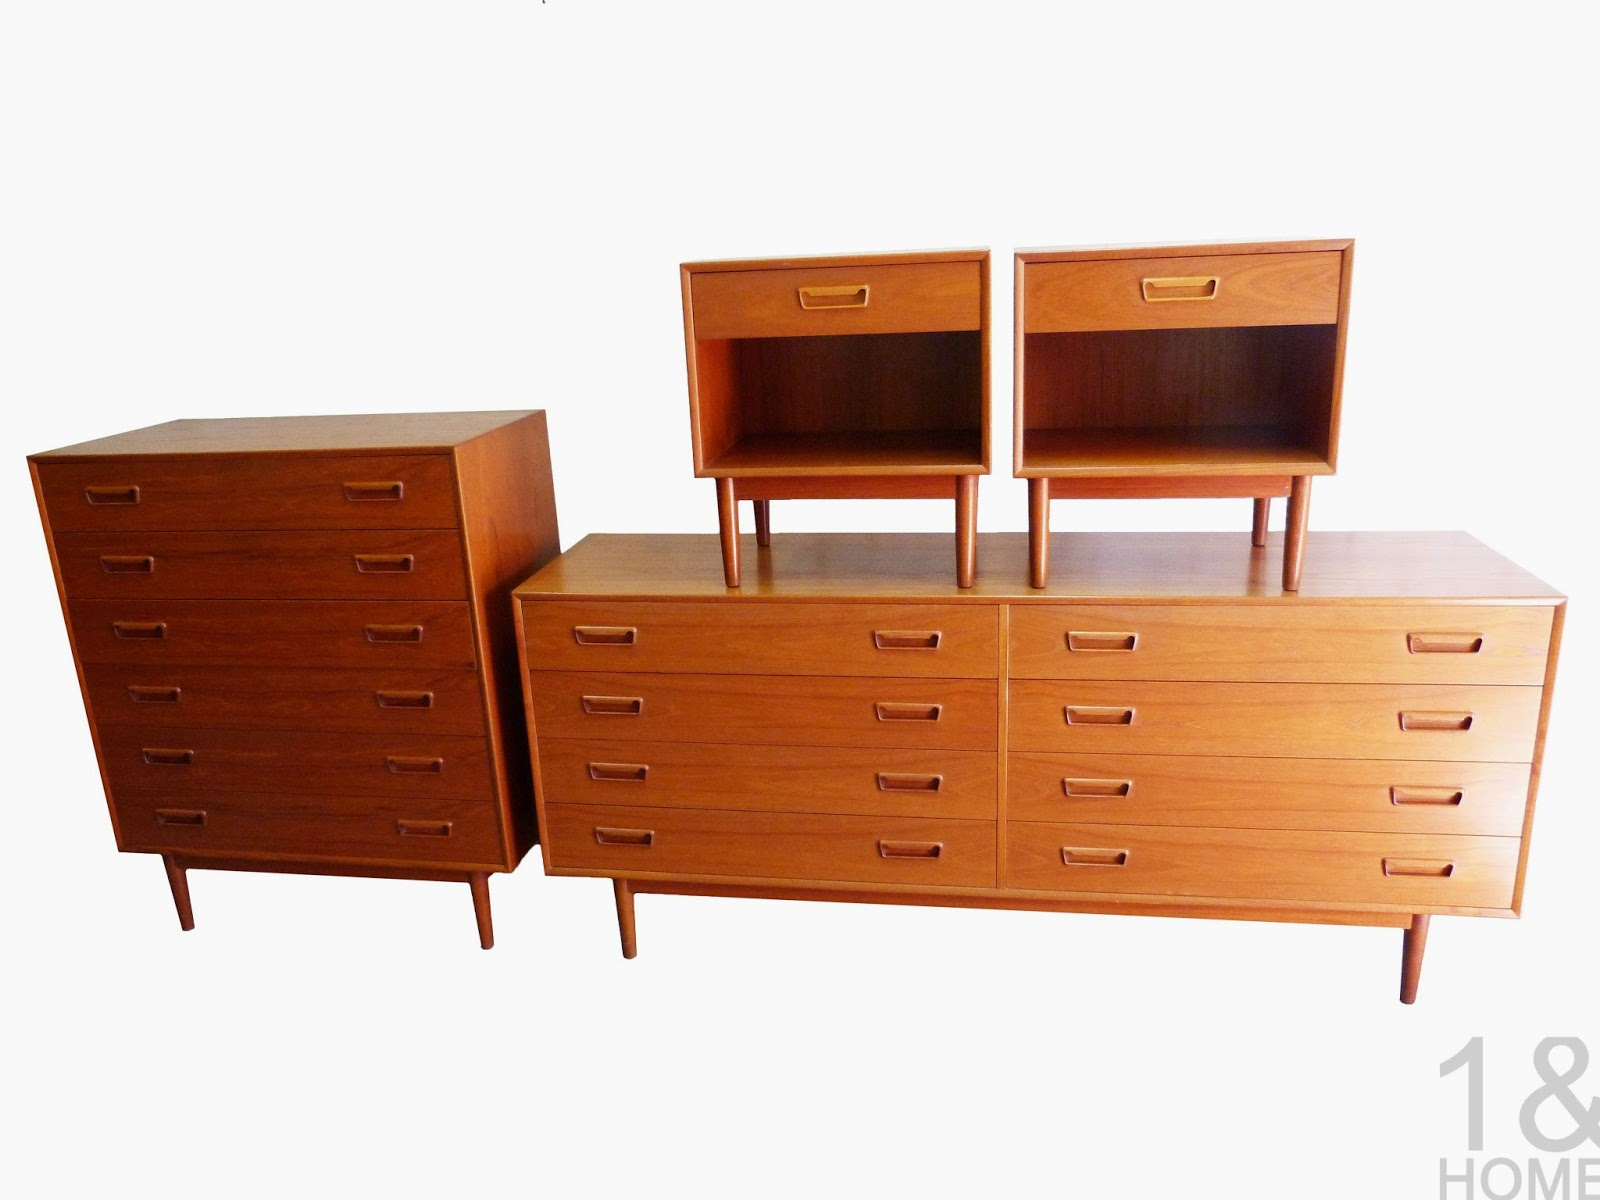 modern mid century danish vintage furniture shop used restoration repair denver. Black Bedroom Furniture Sets. Home Design Ideas